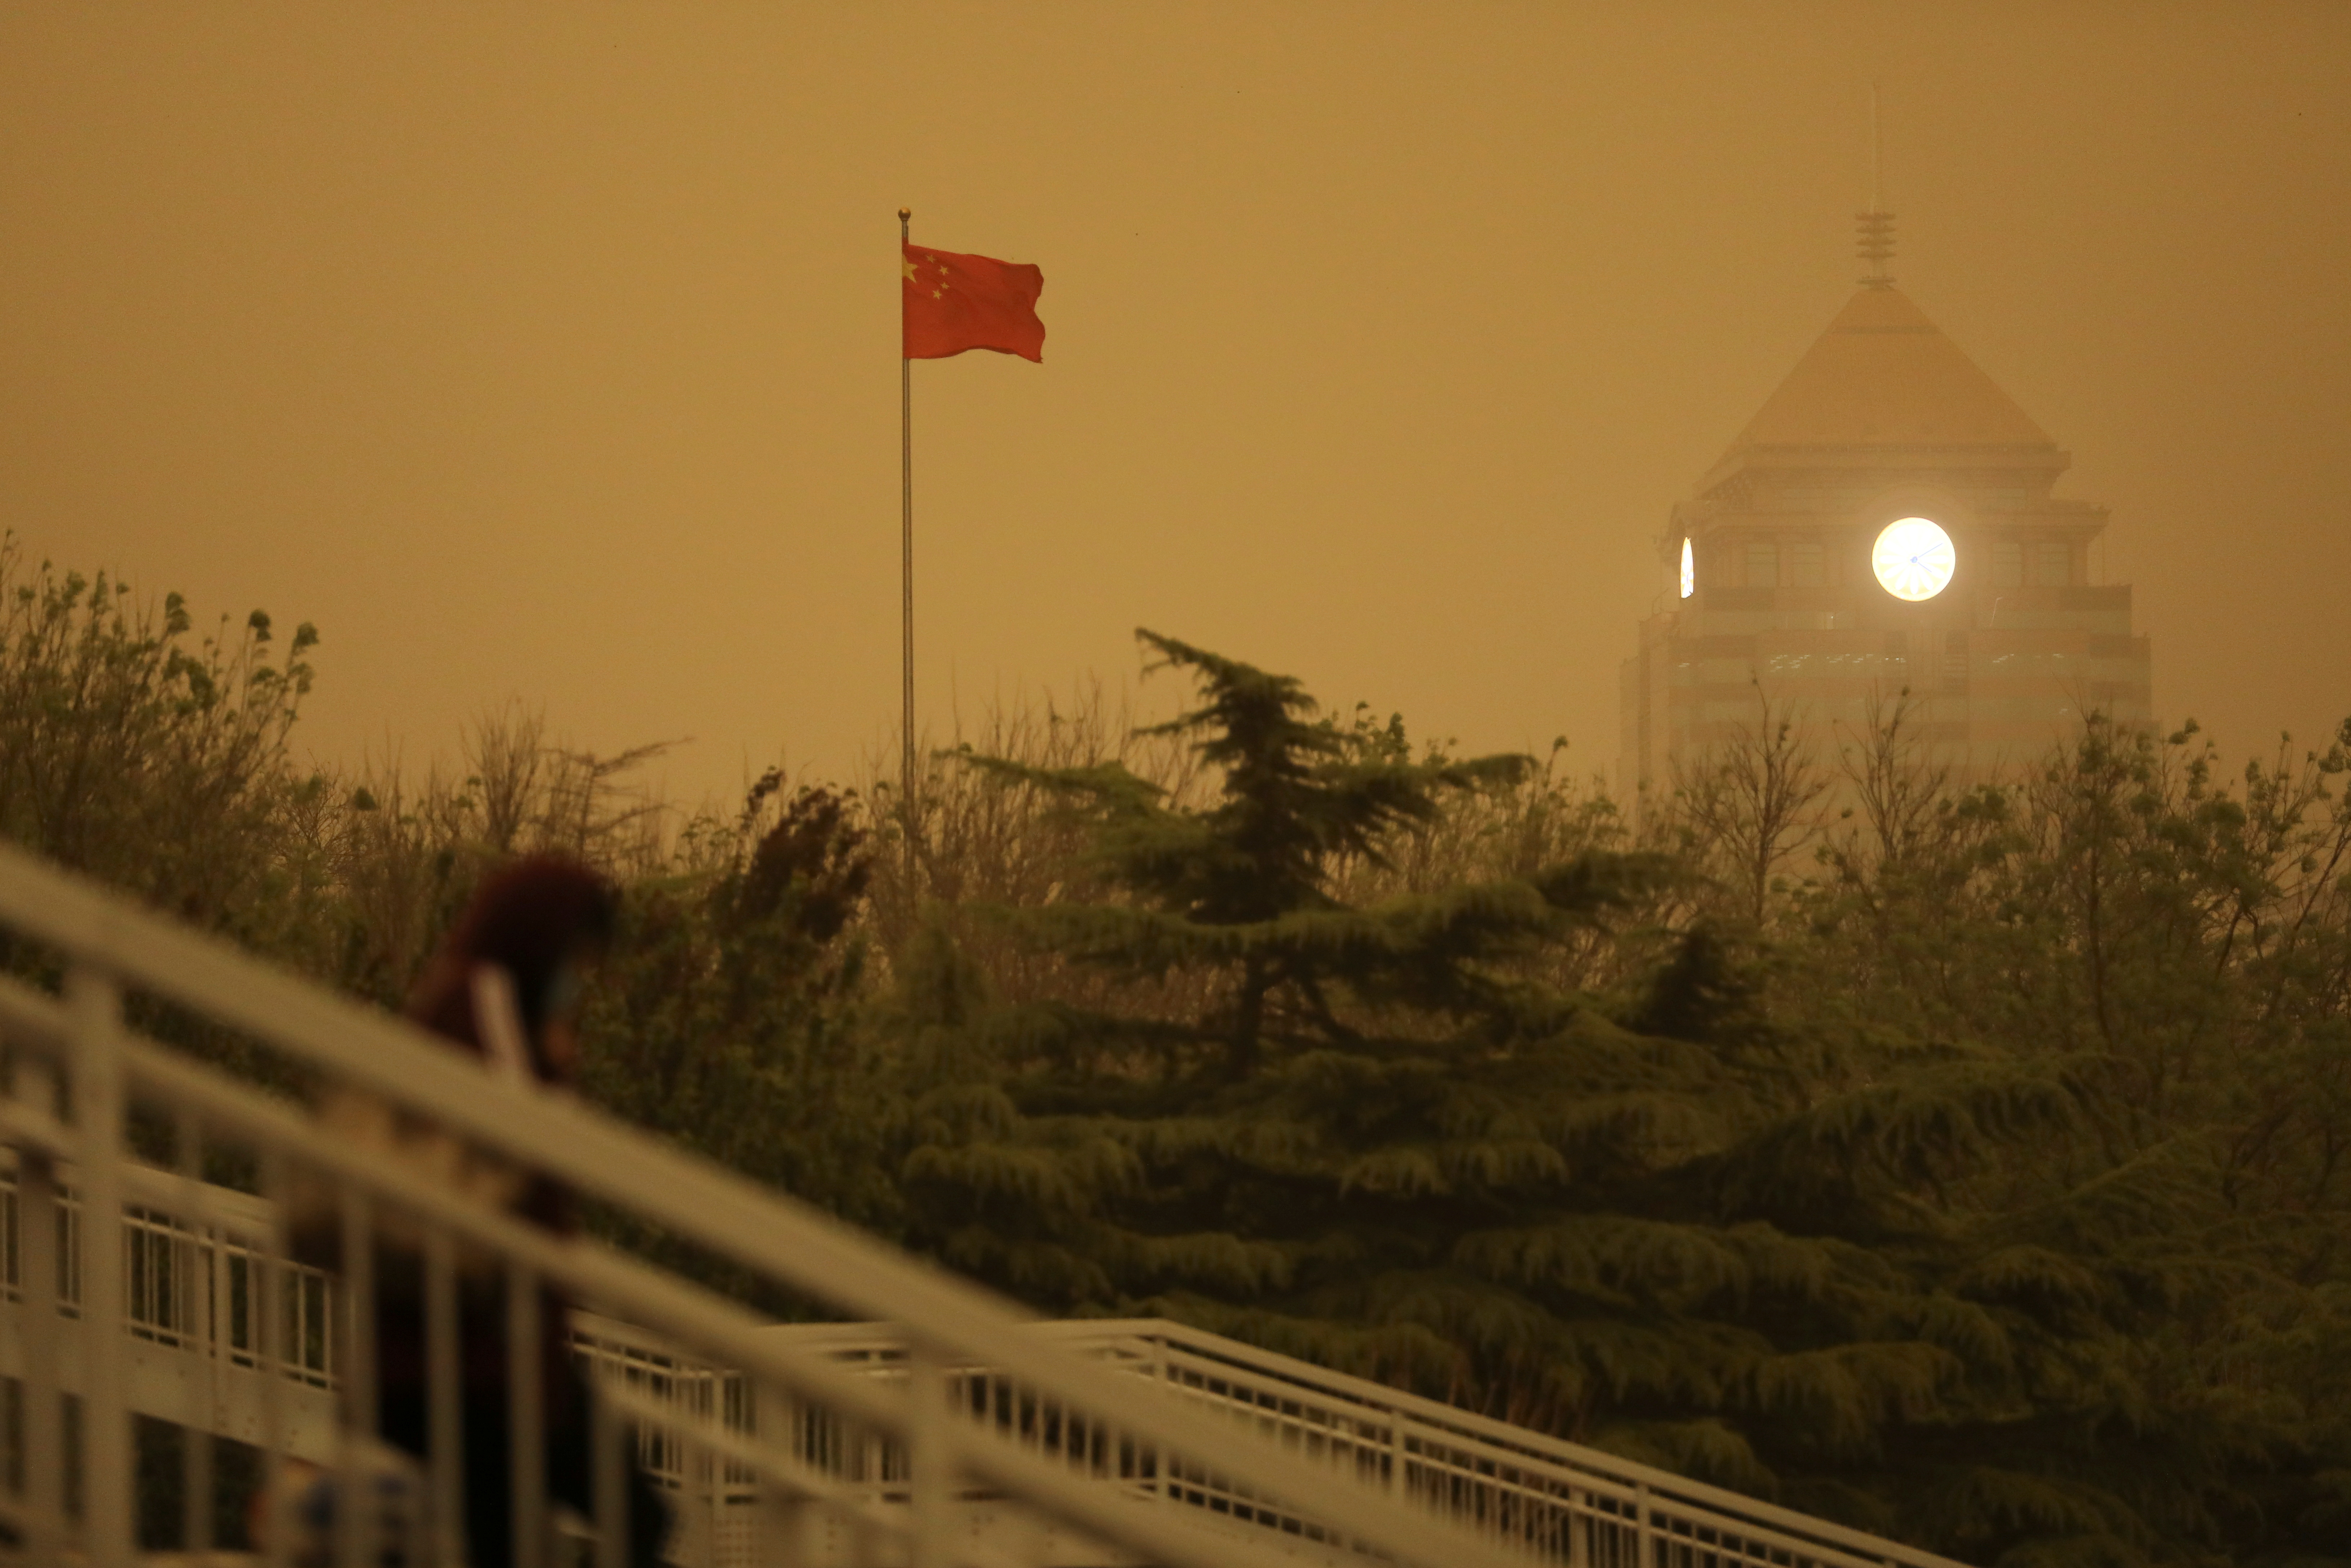 A pedestrian walks near a Chinese flag amid a duststorm in Beijing, China April 15, 2021. REUTERS/Tingshu Wang